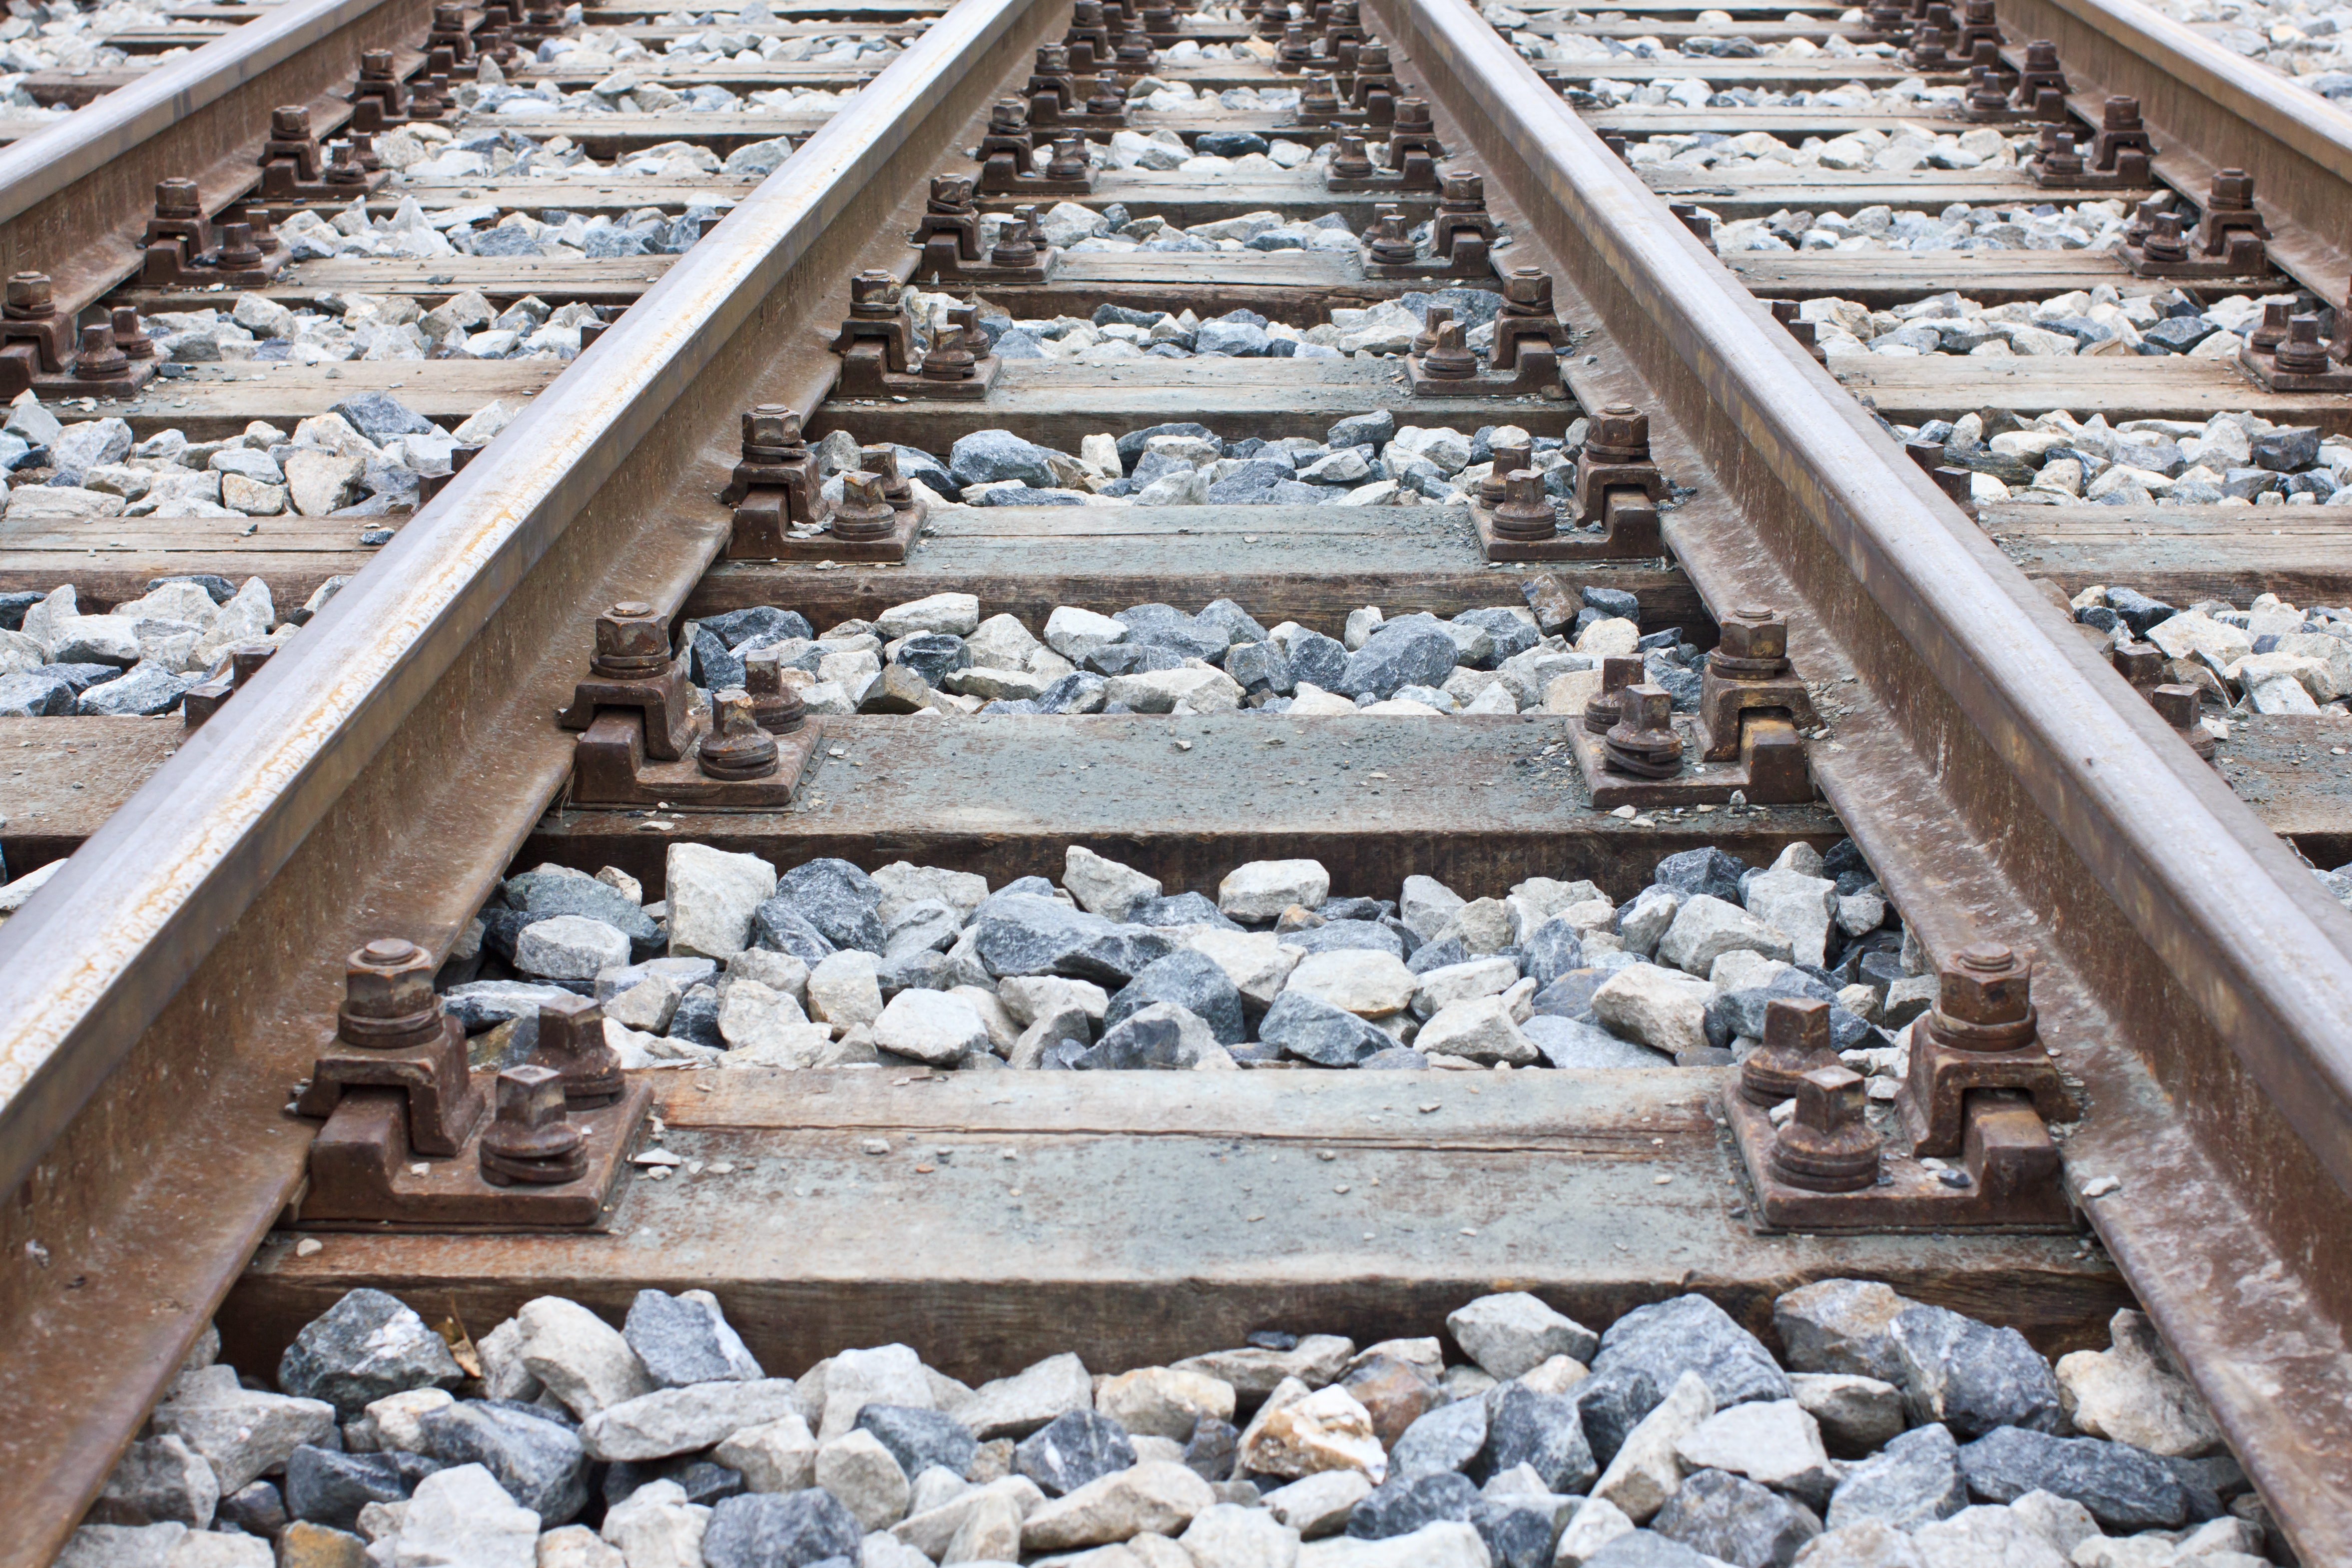 Newly laid train tracks on timber ballasts